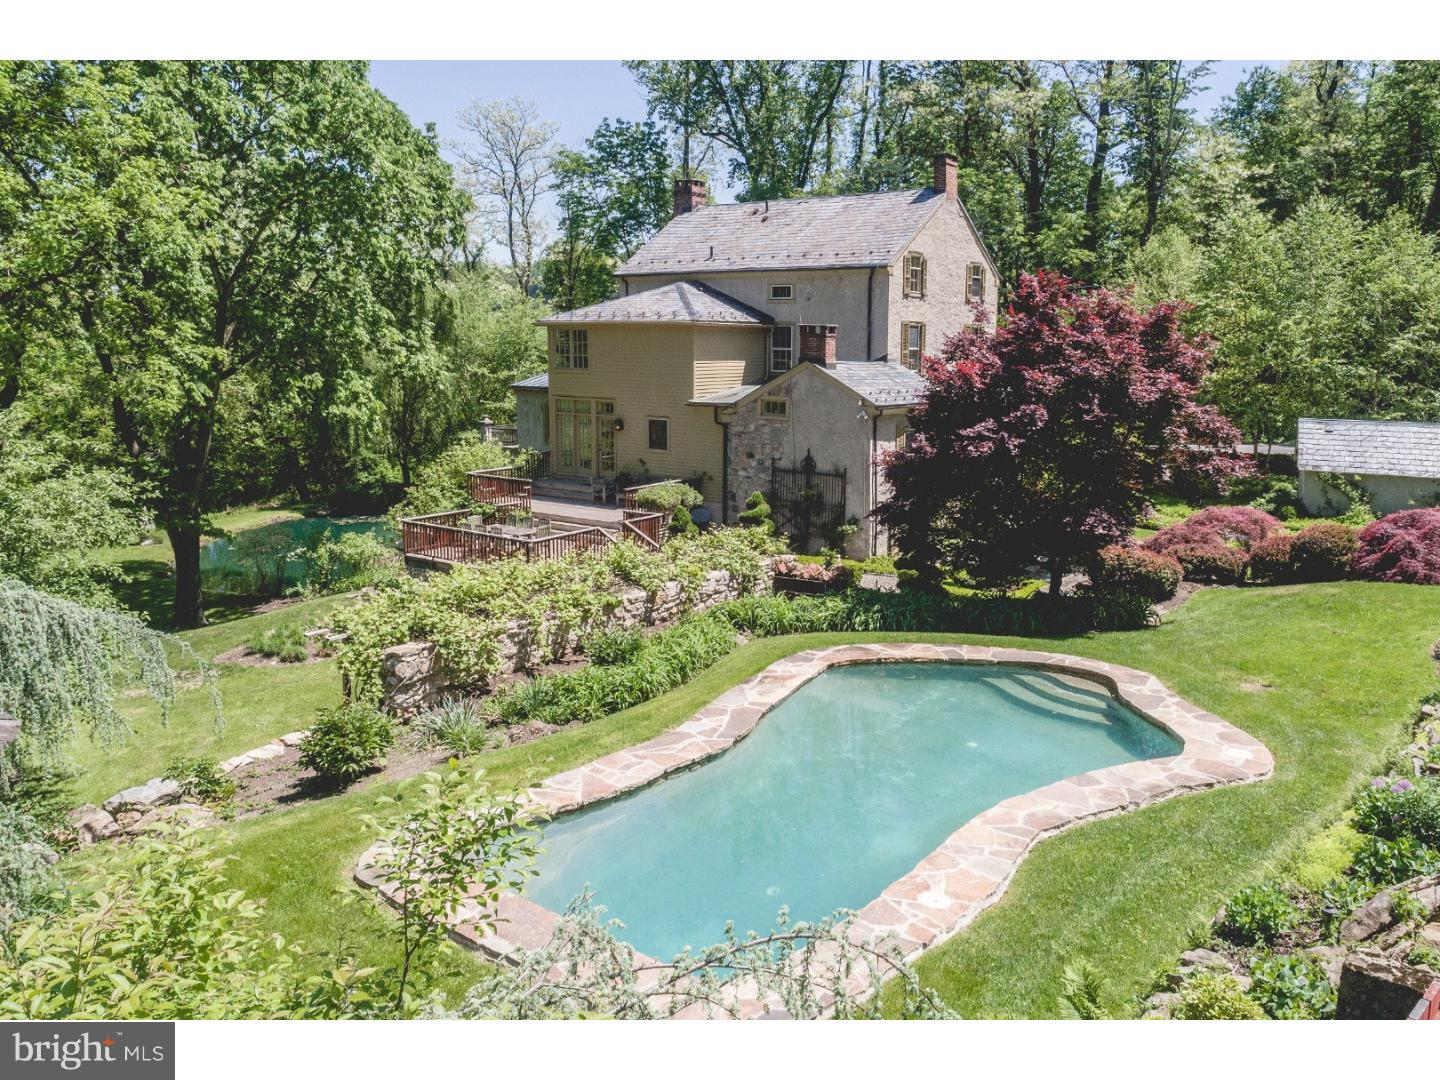 Single Family Home for Sale at 250 DURHAM Road Easton, Pennsylvania 18042 United States